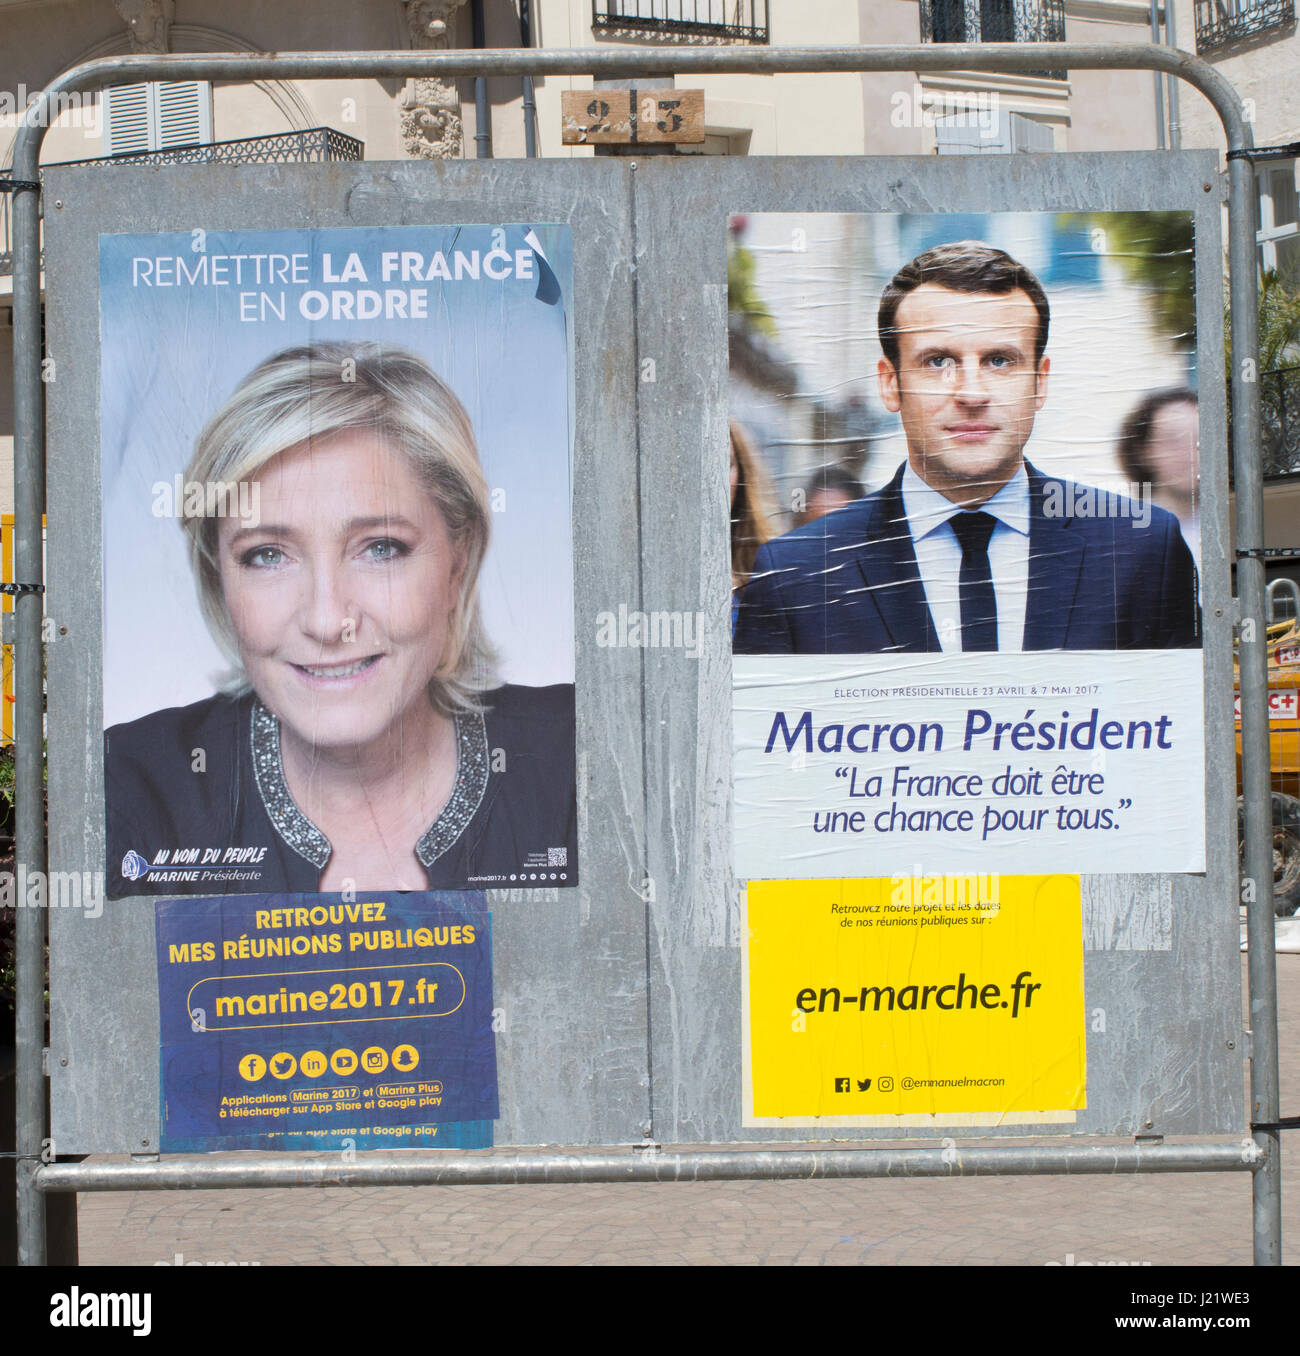 Election posters of the two front runners of the french presidential elections, Marine LePen and emmanuel macron - Stock Image